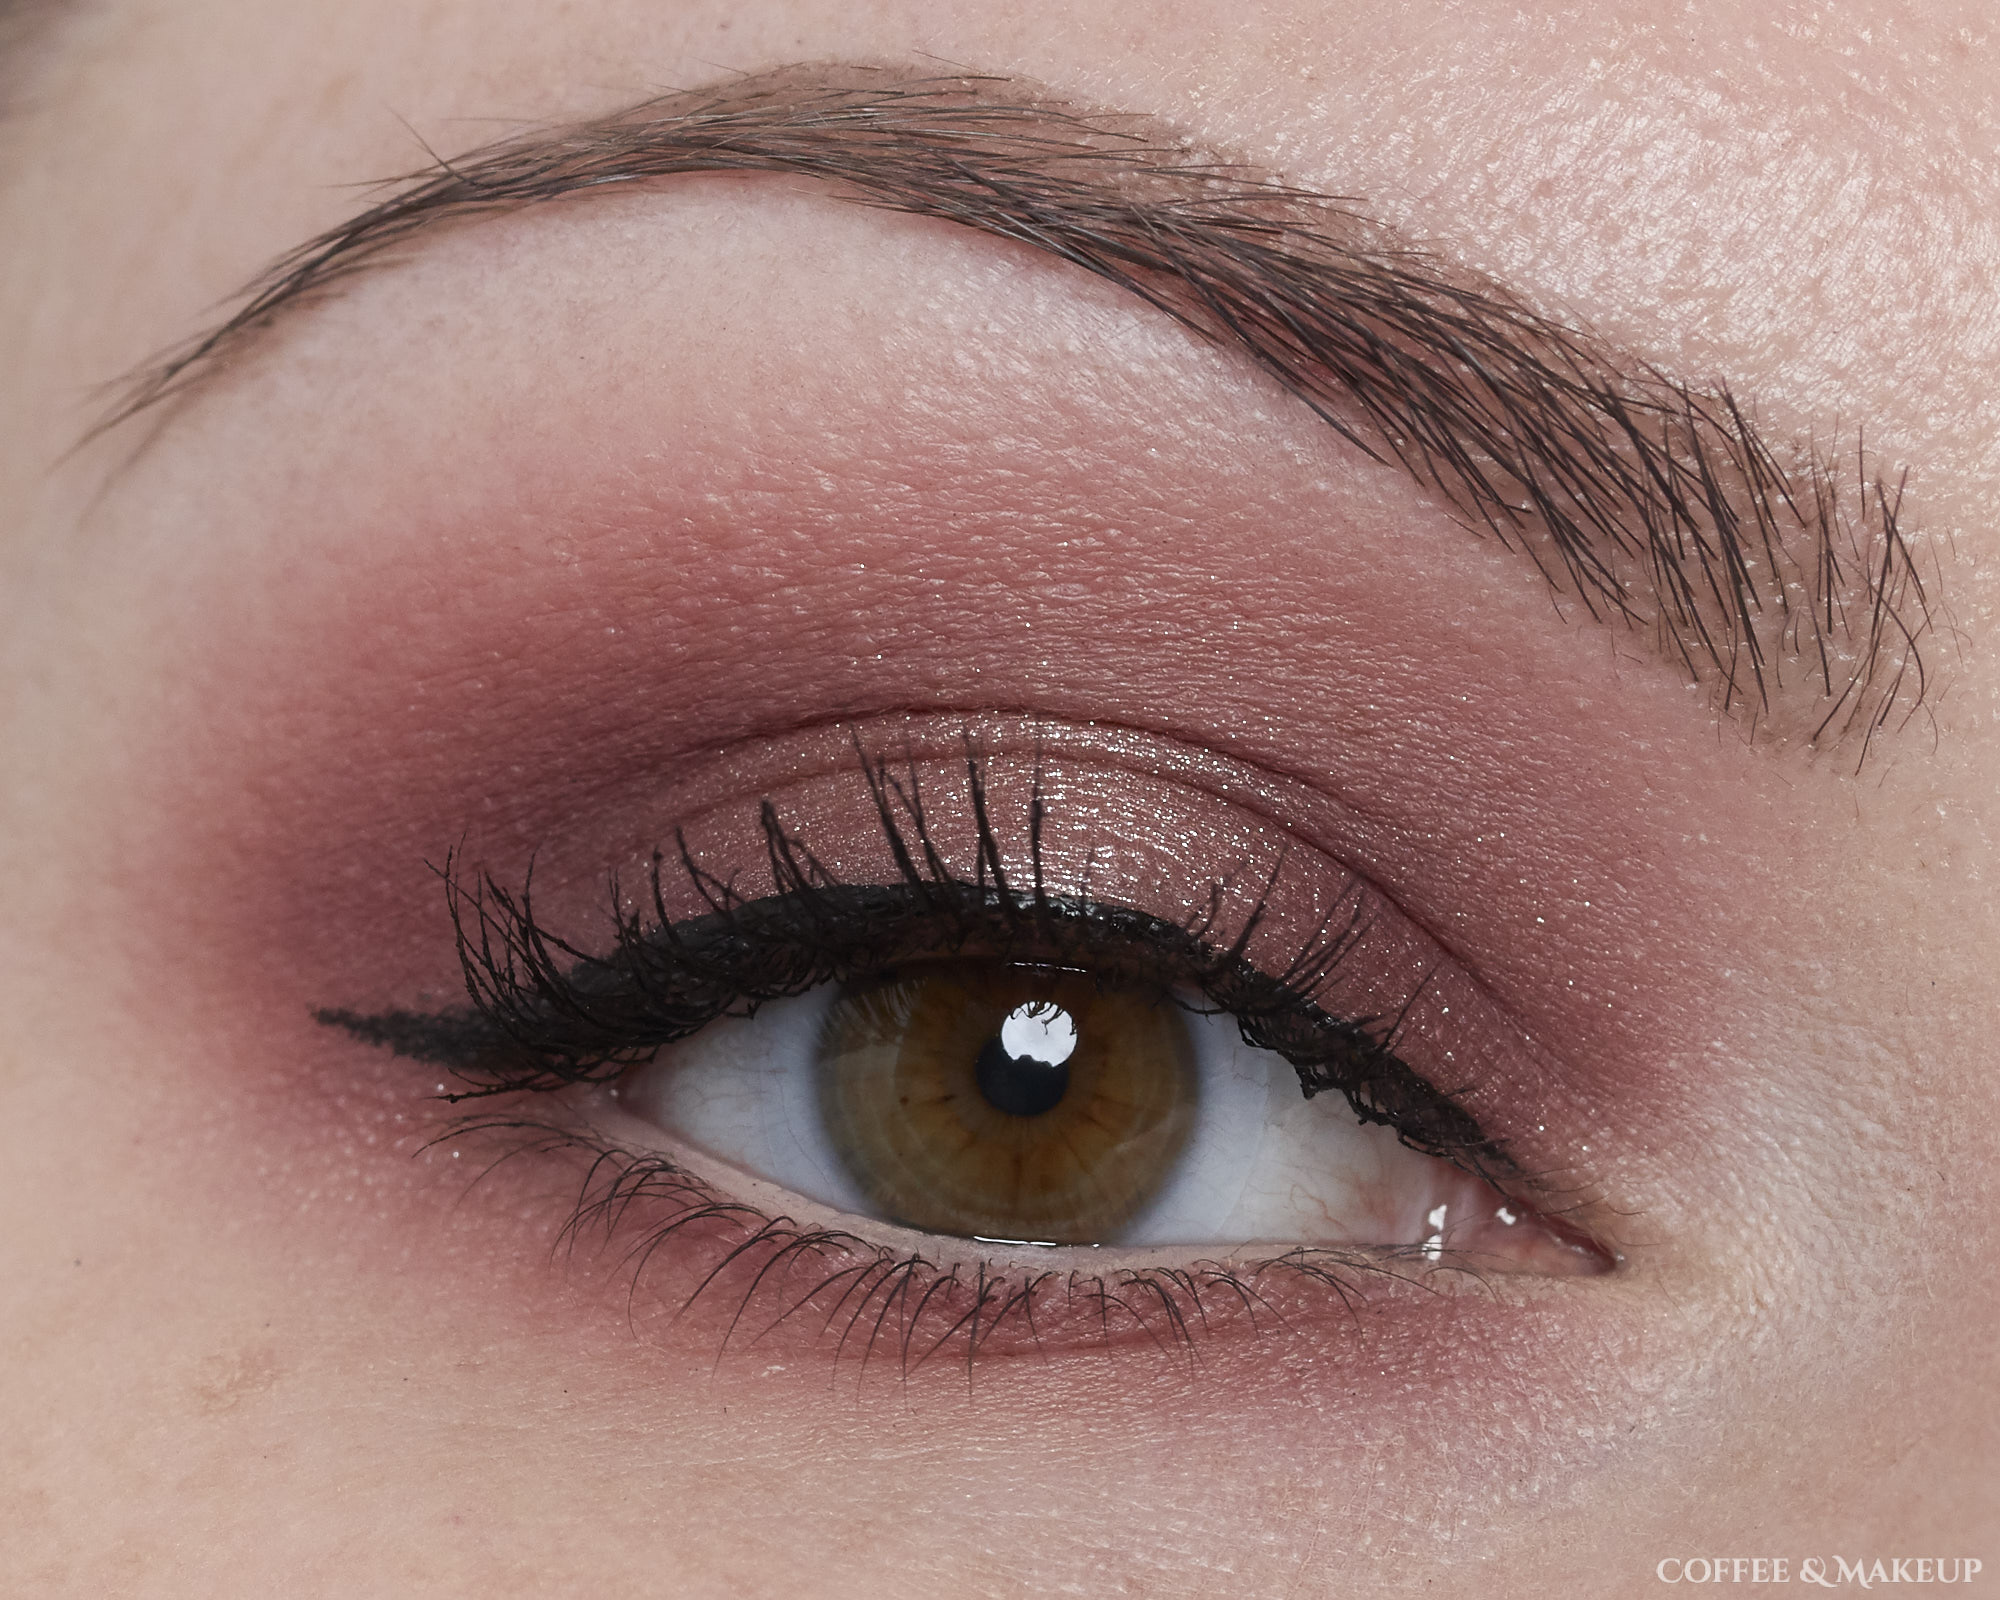 EOTD Ft. ColourPop She's A Rainbow Palette, Maybelline Diamond District Palette, Essence Melted Chrome Eyeshadow